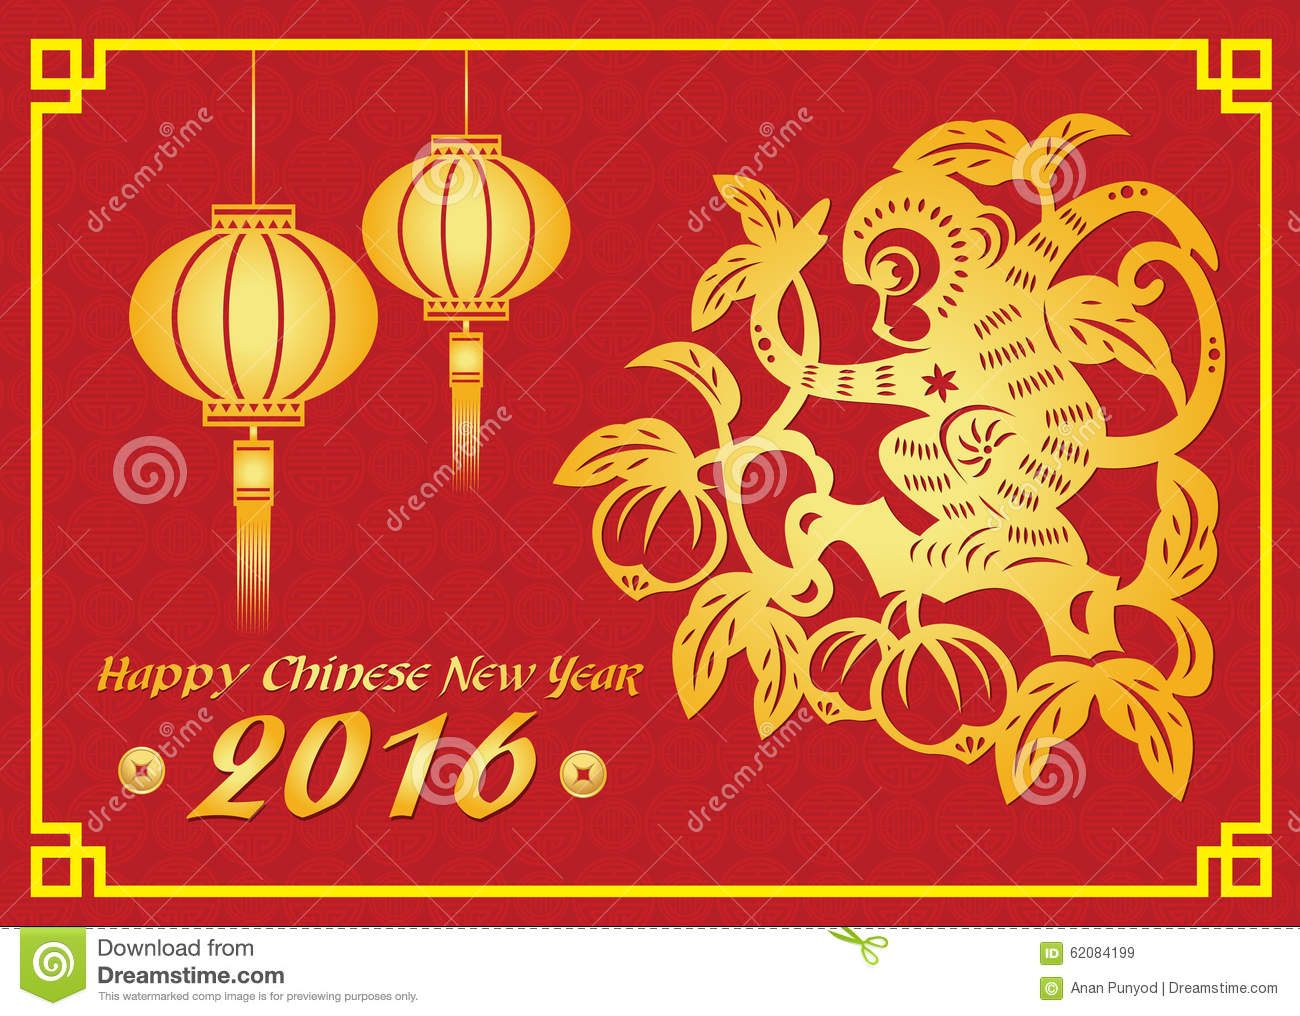 Happy Chinese New Year 2016 Card Is Lanterns Gold Monkey On Peach